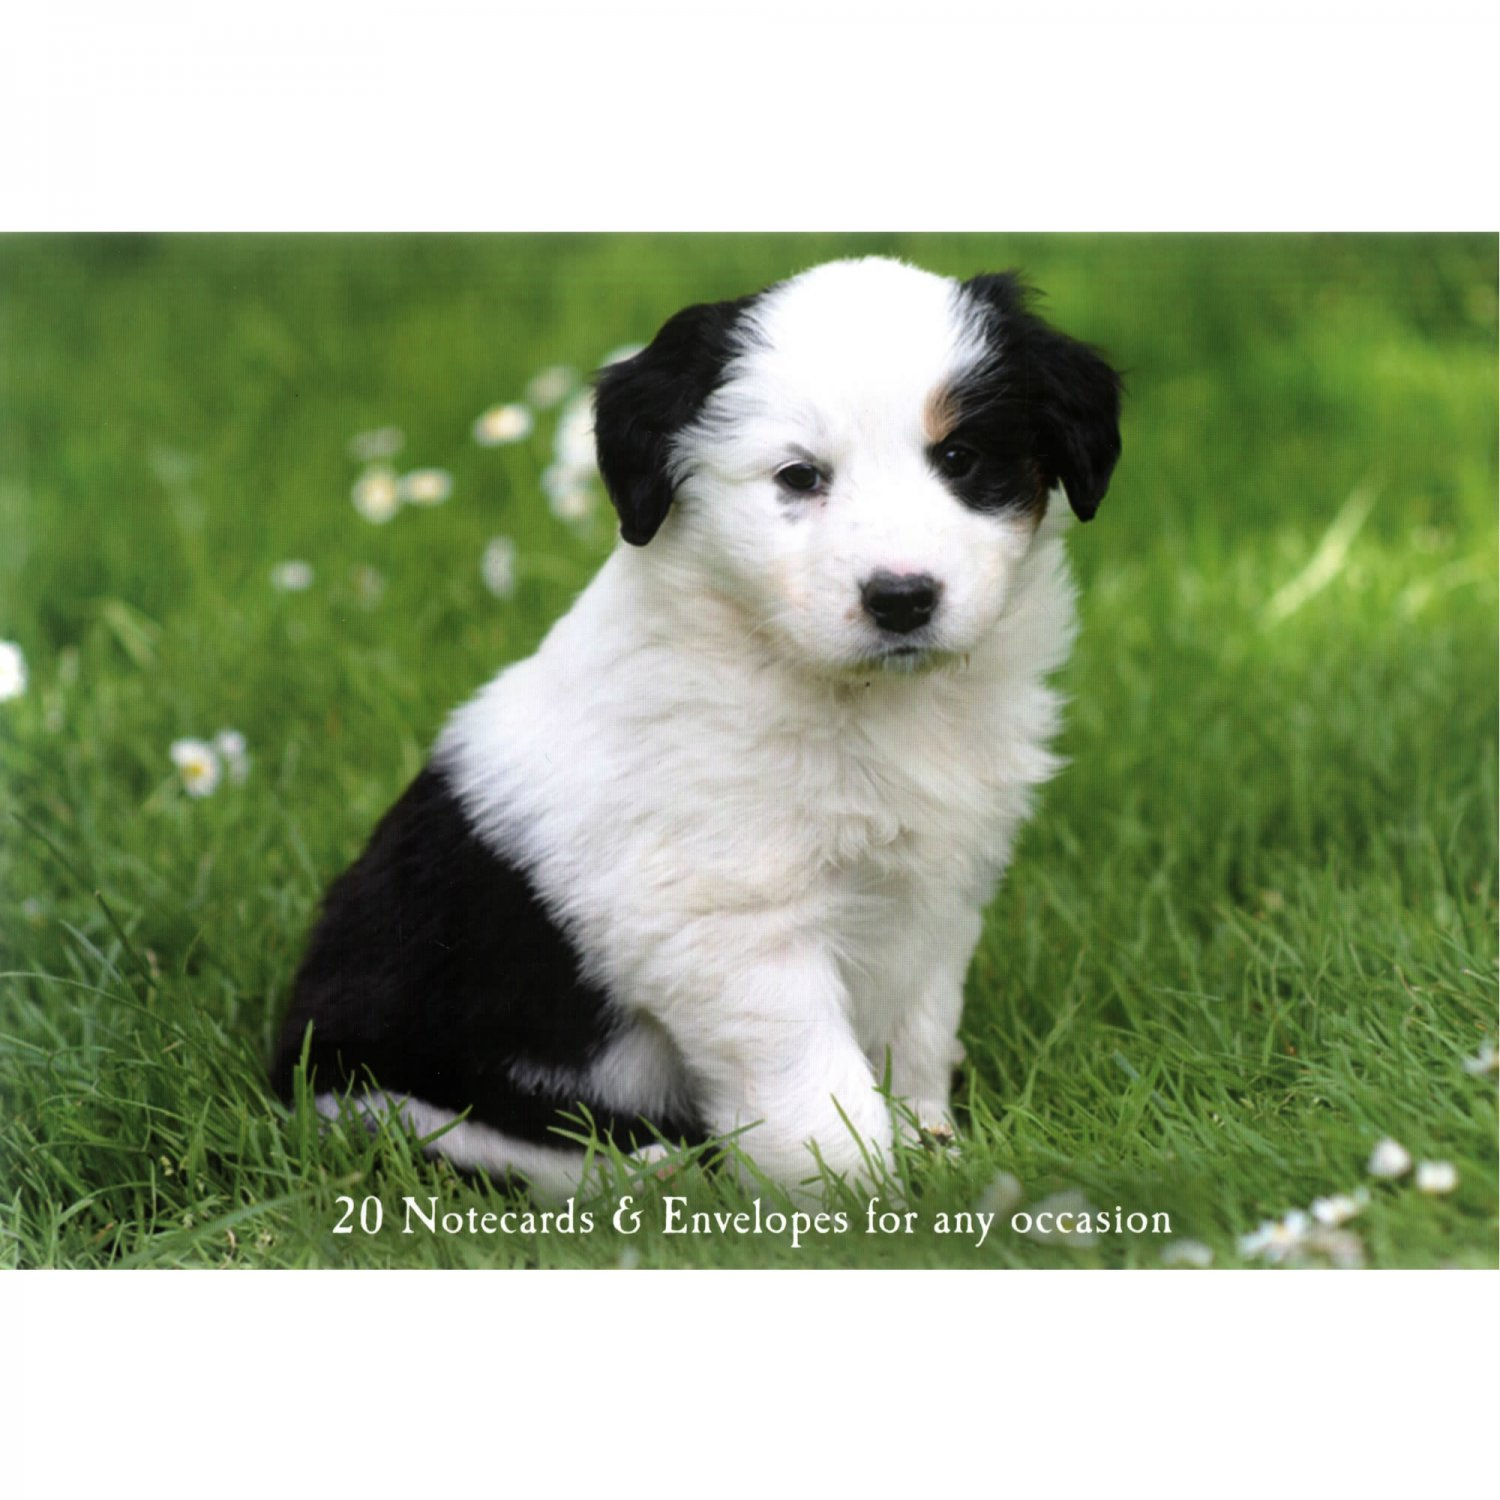 Puppies - Set of 20 Notecards and Envelopes with Photos of Puppies